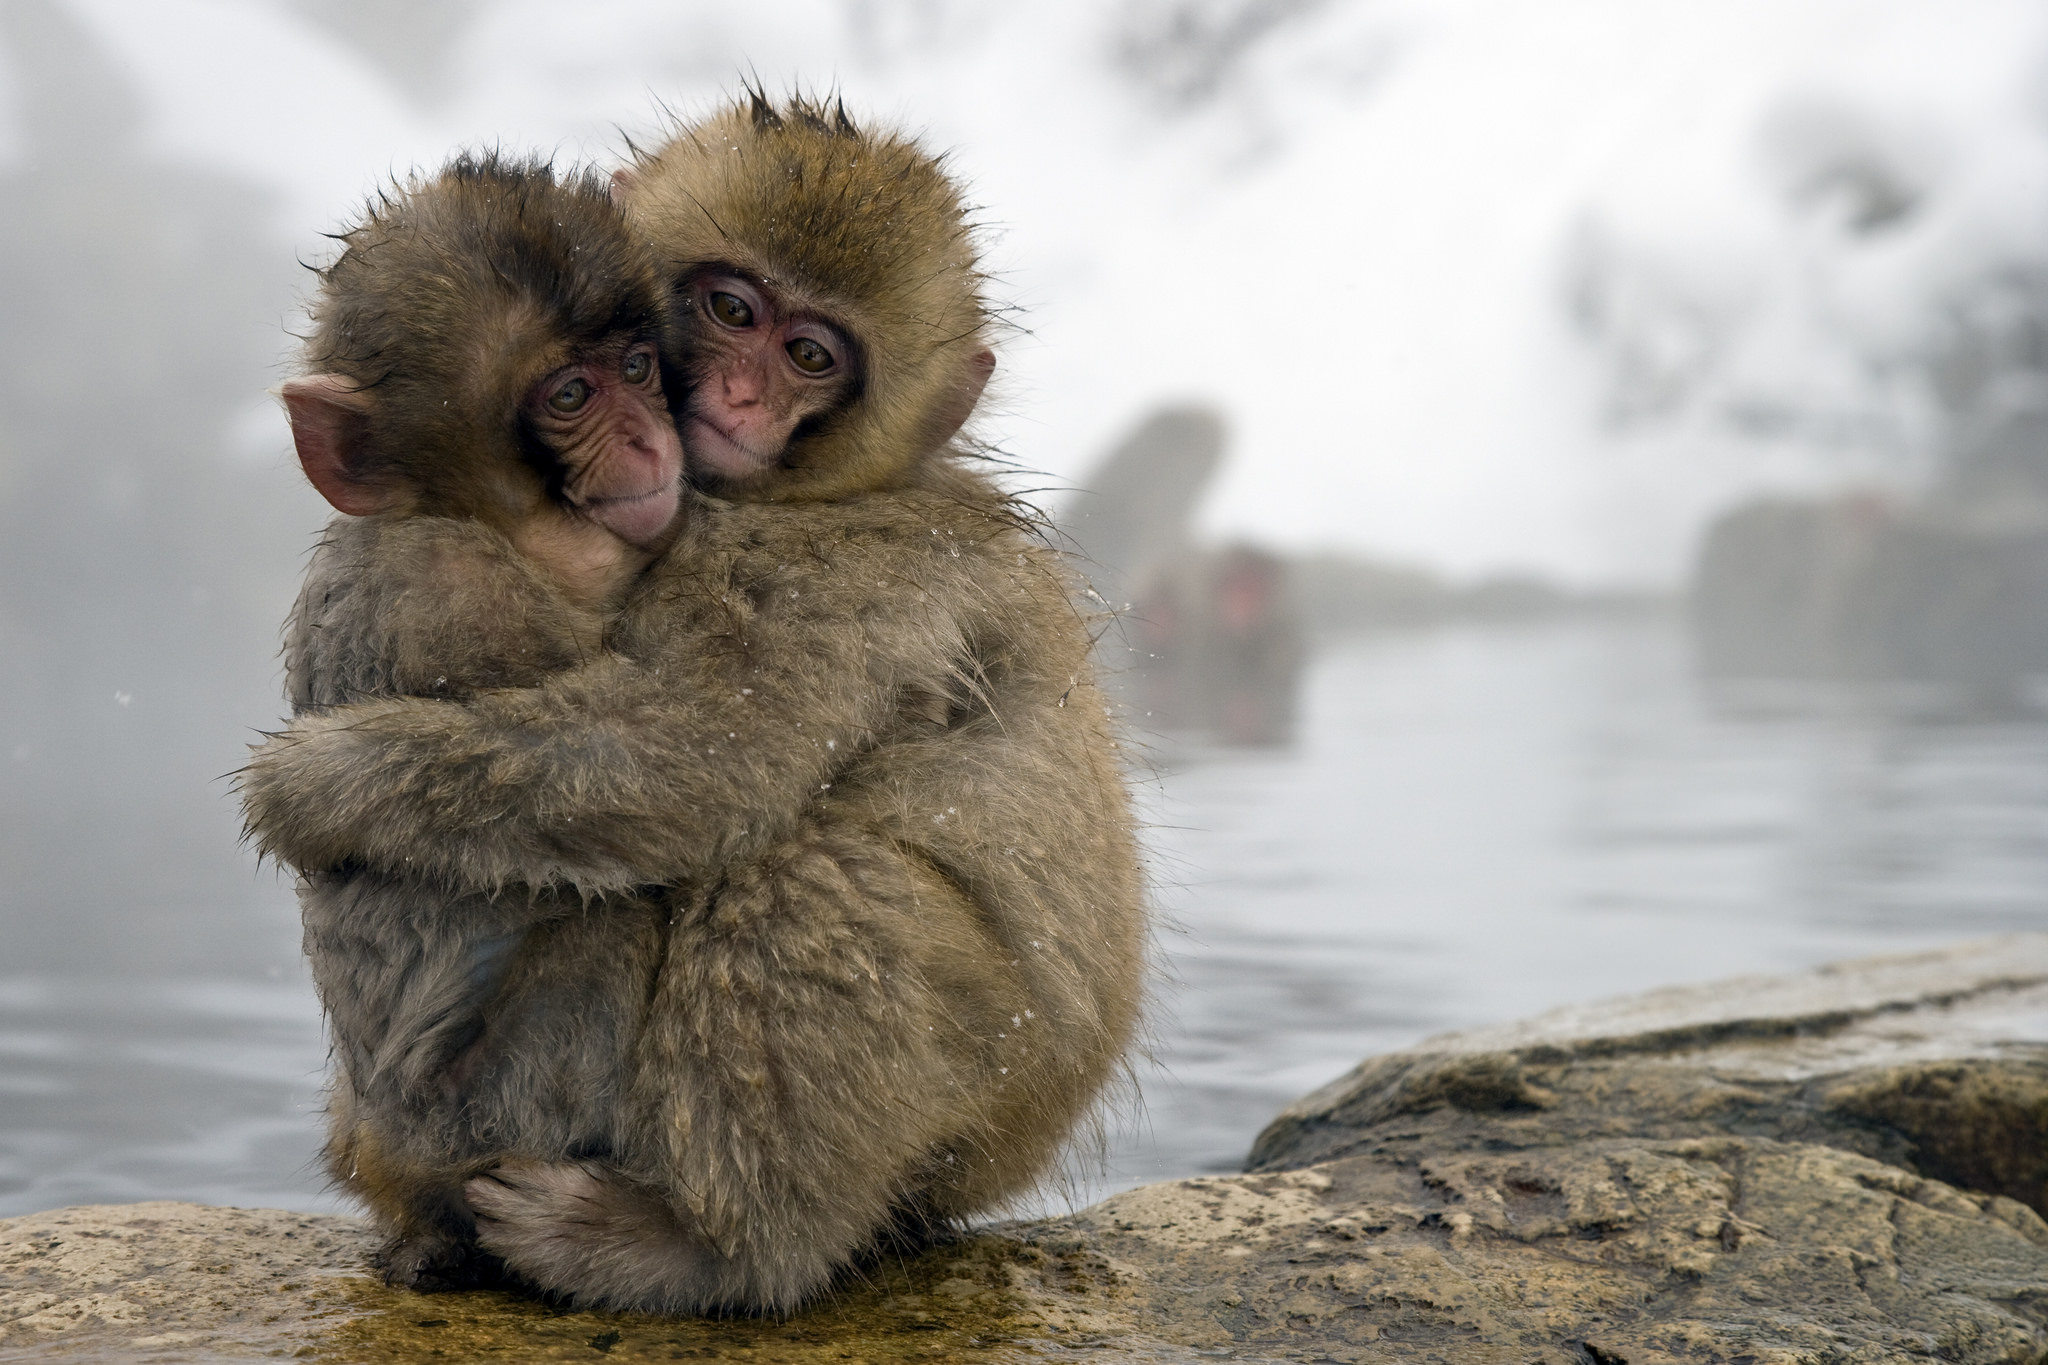 Japan's snow monkeys